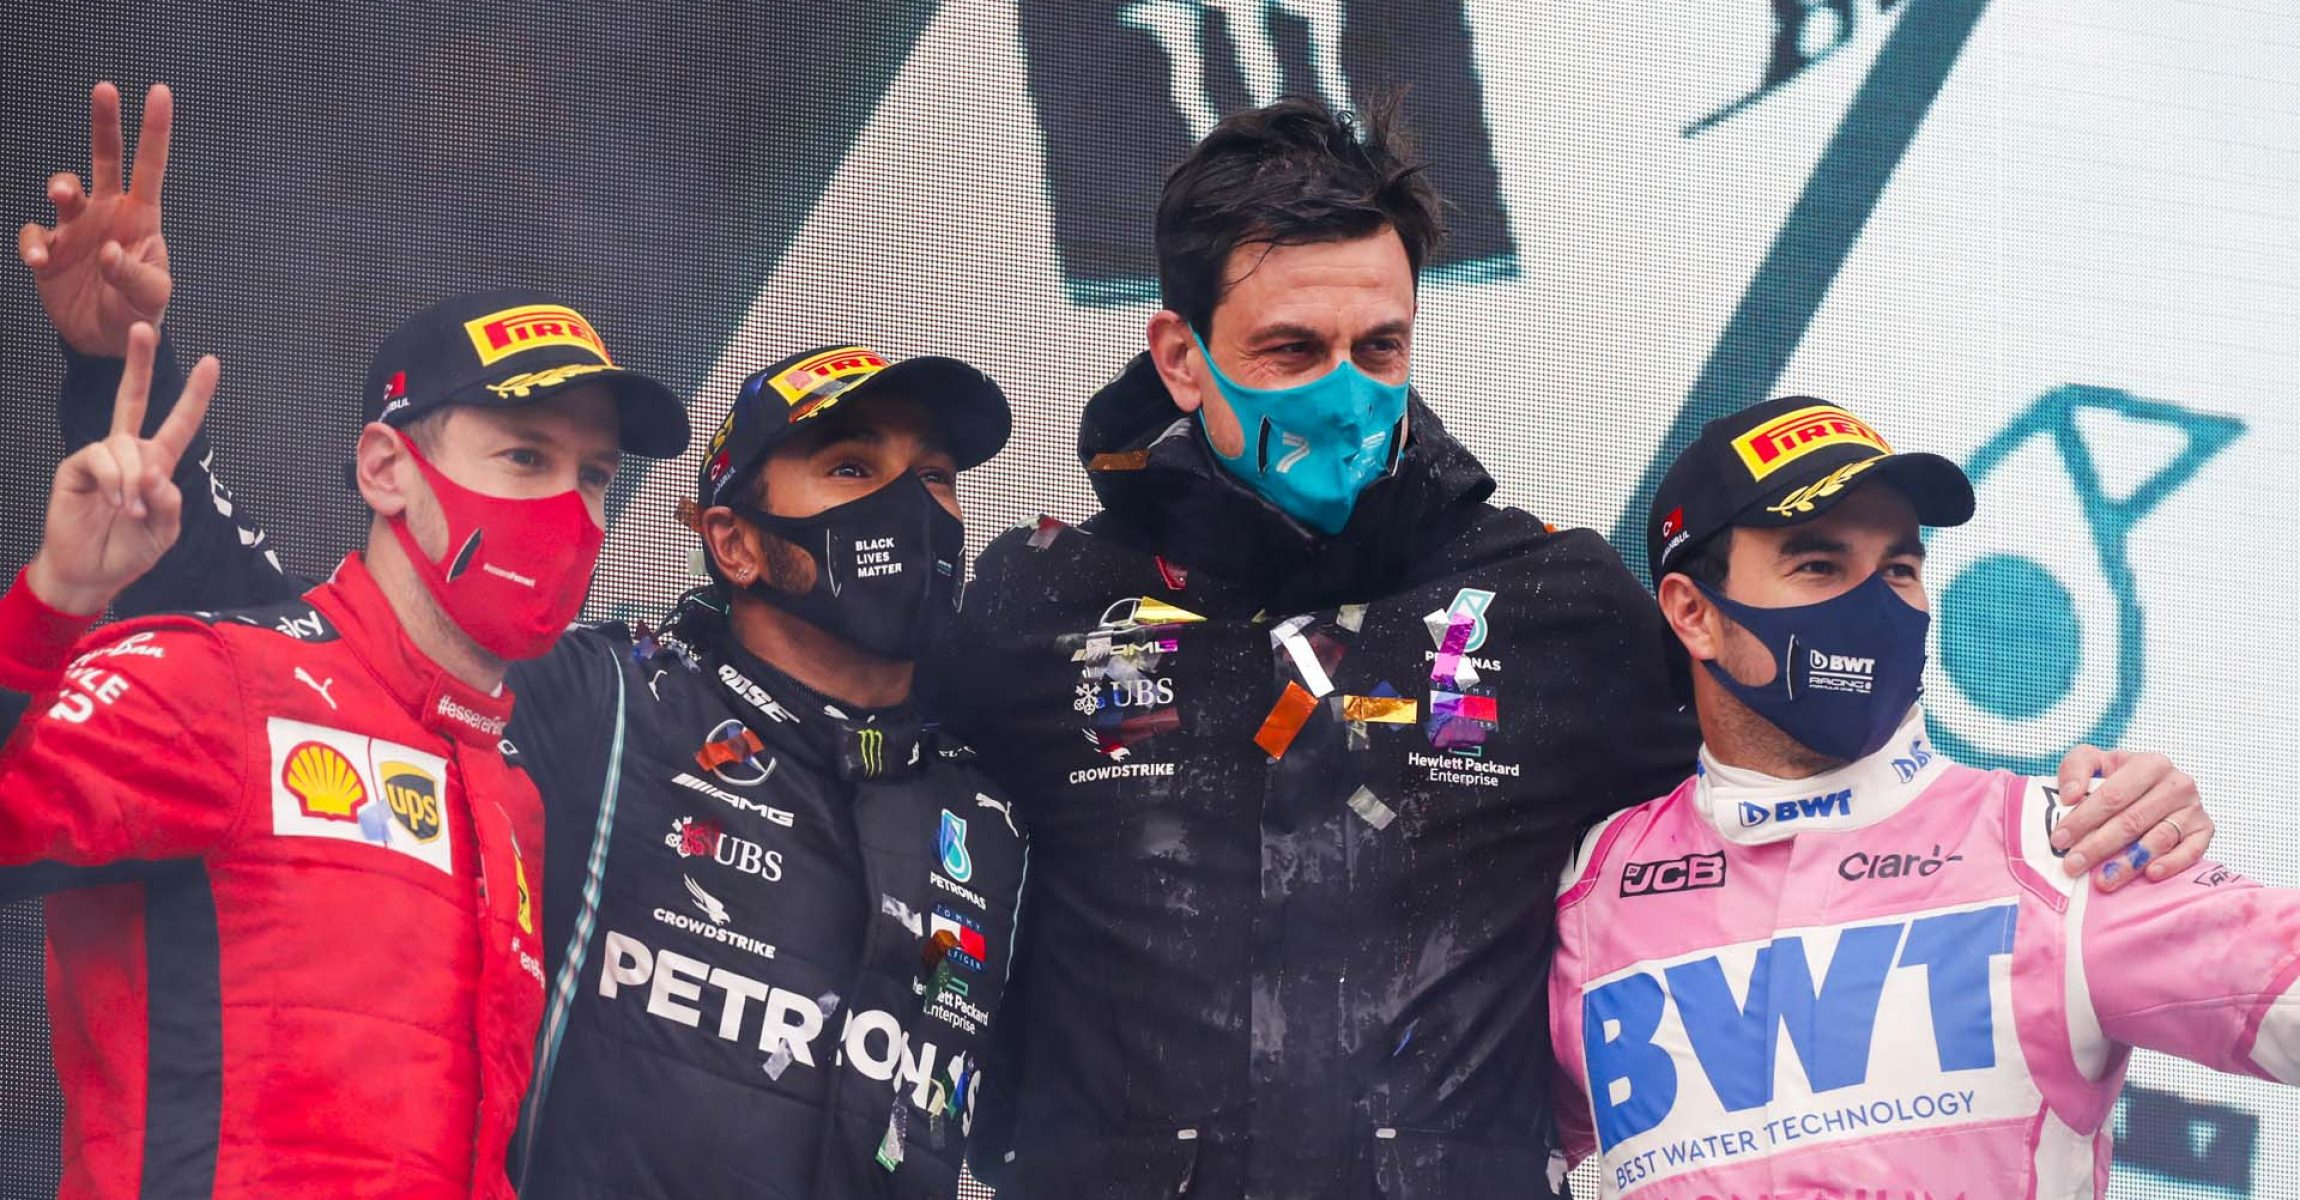 Sebastian Vettel, Ferrari, Race Winner Lewis Hamilton, Mercedes-AMG Petronas F1, Toto Wolff, Executive Director (Business), Mercedes AMG and Sergio Perez, Racing Point celebrate on the podium